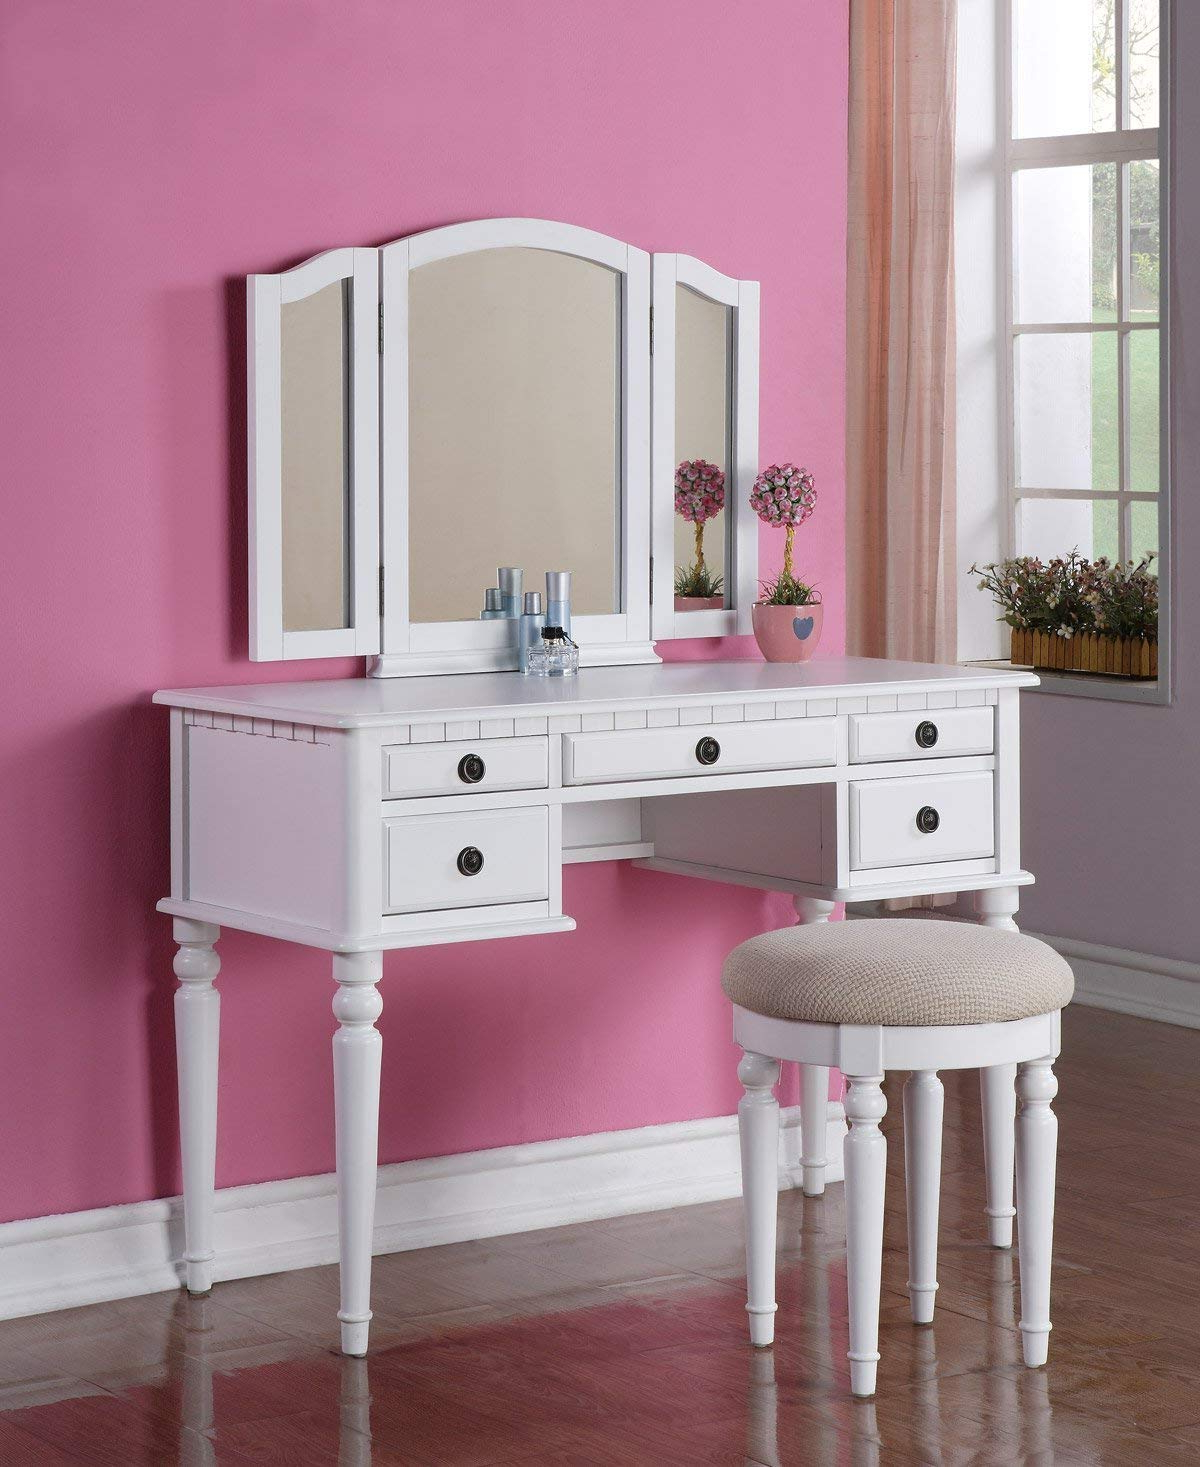 [%Review]Bobkona F4072 St. Croix Collection Vanity Set With Stool Intended For 2020 Saintcroix 3 Piece Dining Sets|Saintcroix 3 Piece Dining Sets With Widely Used Review]Bobkona F4072 St. Croix Collection Vanity Set With Stool|Recent Saintcroix 3 Piece Dining Sets Throughout Review]Bobkona F4072 St. Croix Collection Vanity Set With Stool|Most Recent Review]Bobkona F4072 St (View 22 of 25)